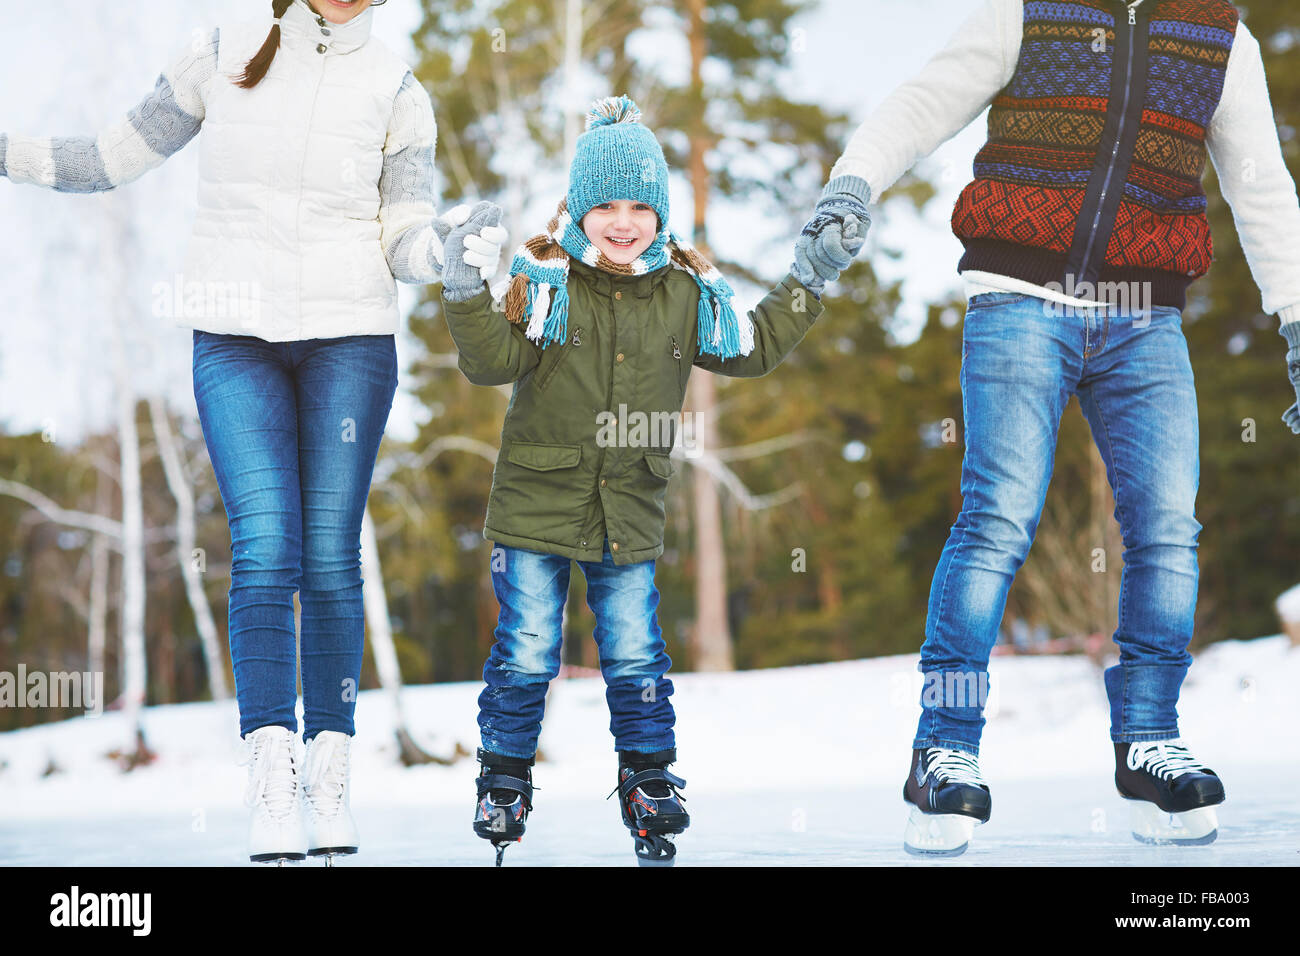 Happy little boy ice-skating with his parents together - Stock Image